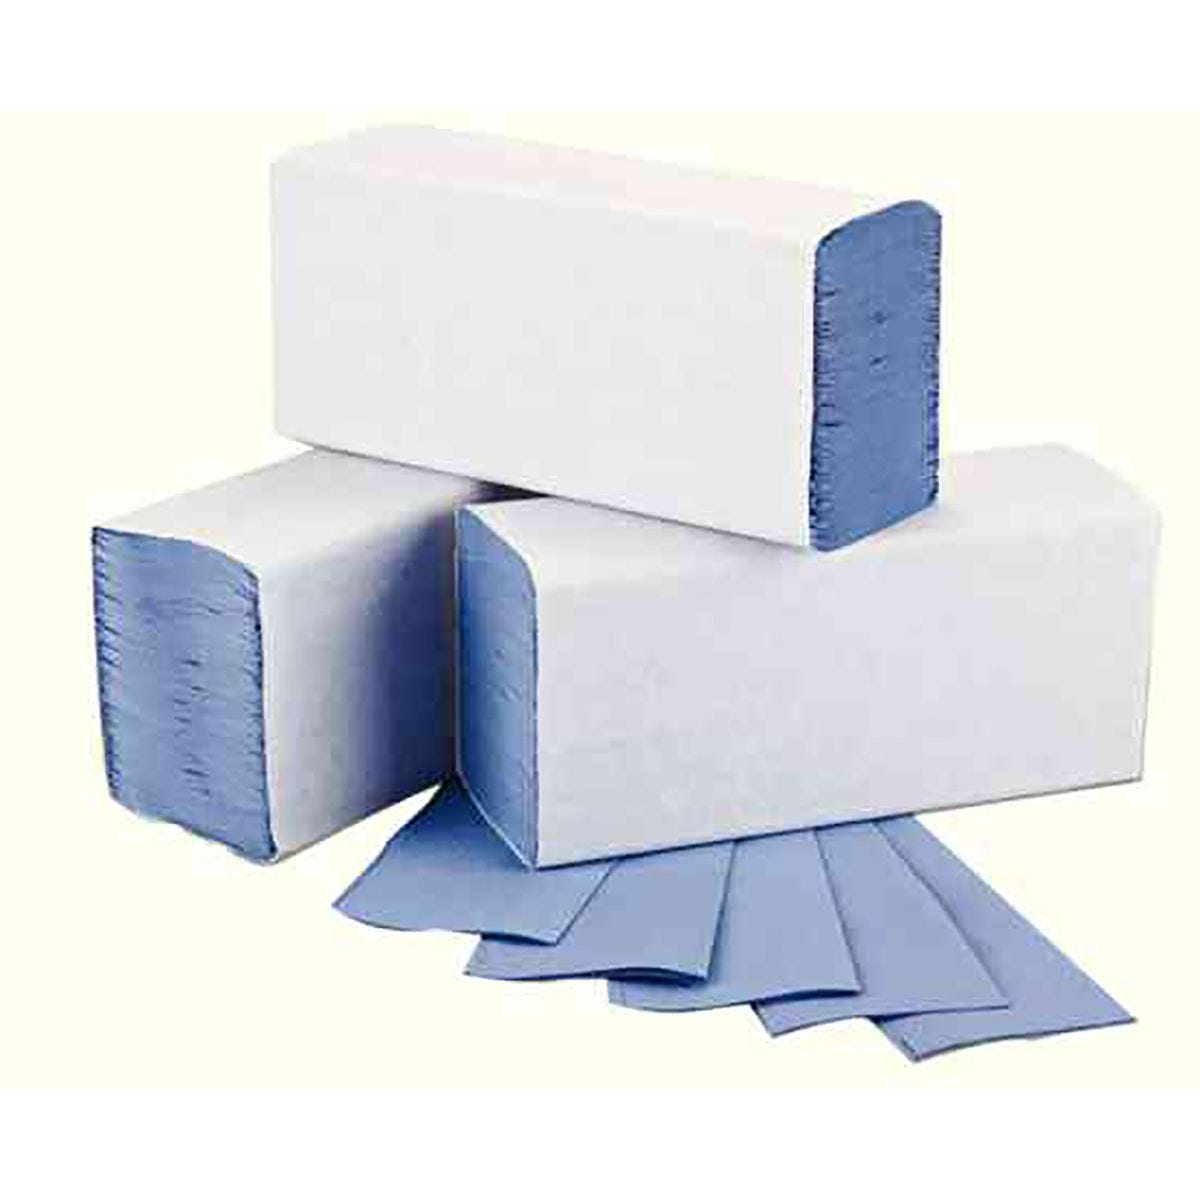 Image of 2Work Blue 1-Ply M-Fold Hand Towel 242x240mm Pack of 3000